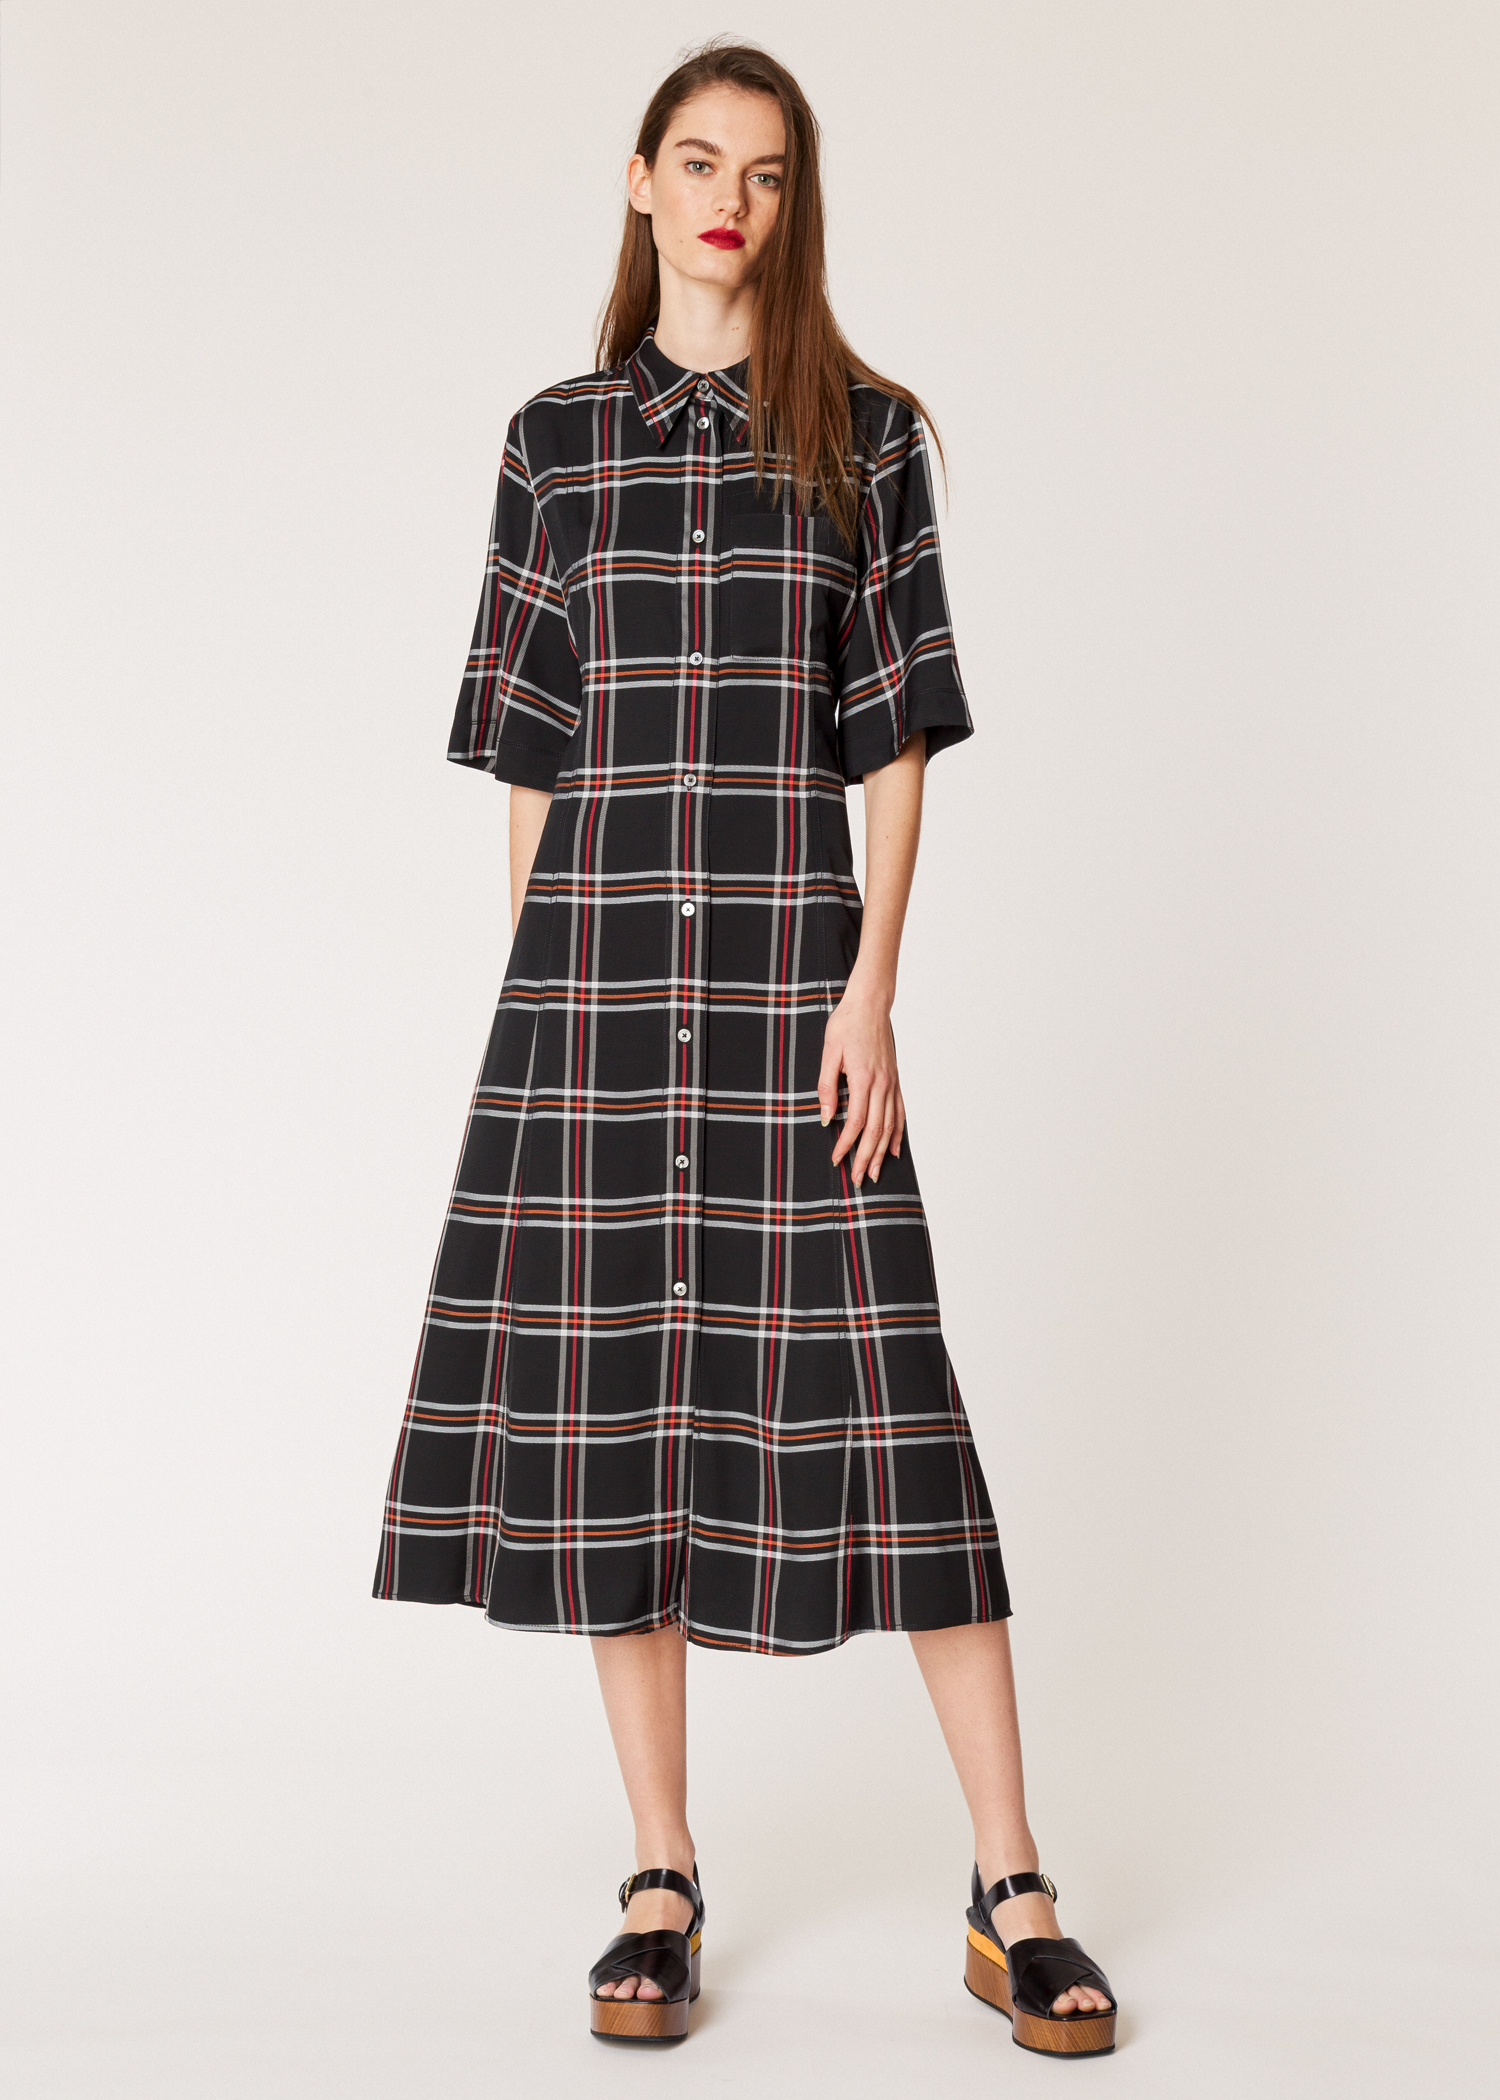 bacb67d6d135fe Model front View - Women s Black Check Midi Shirt Dress Paul Smith